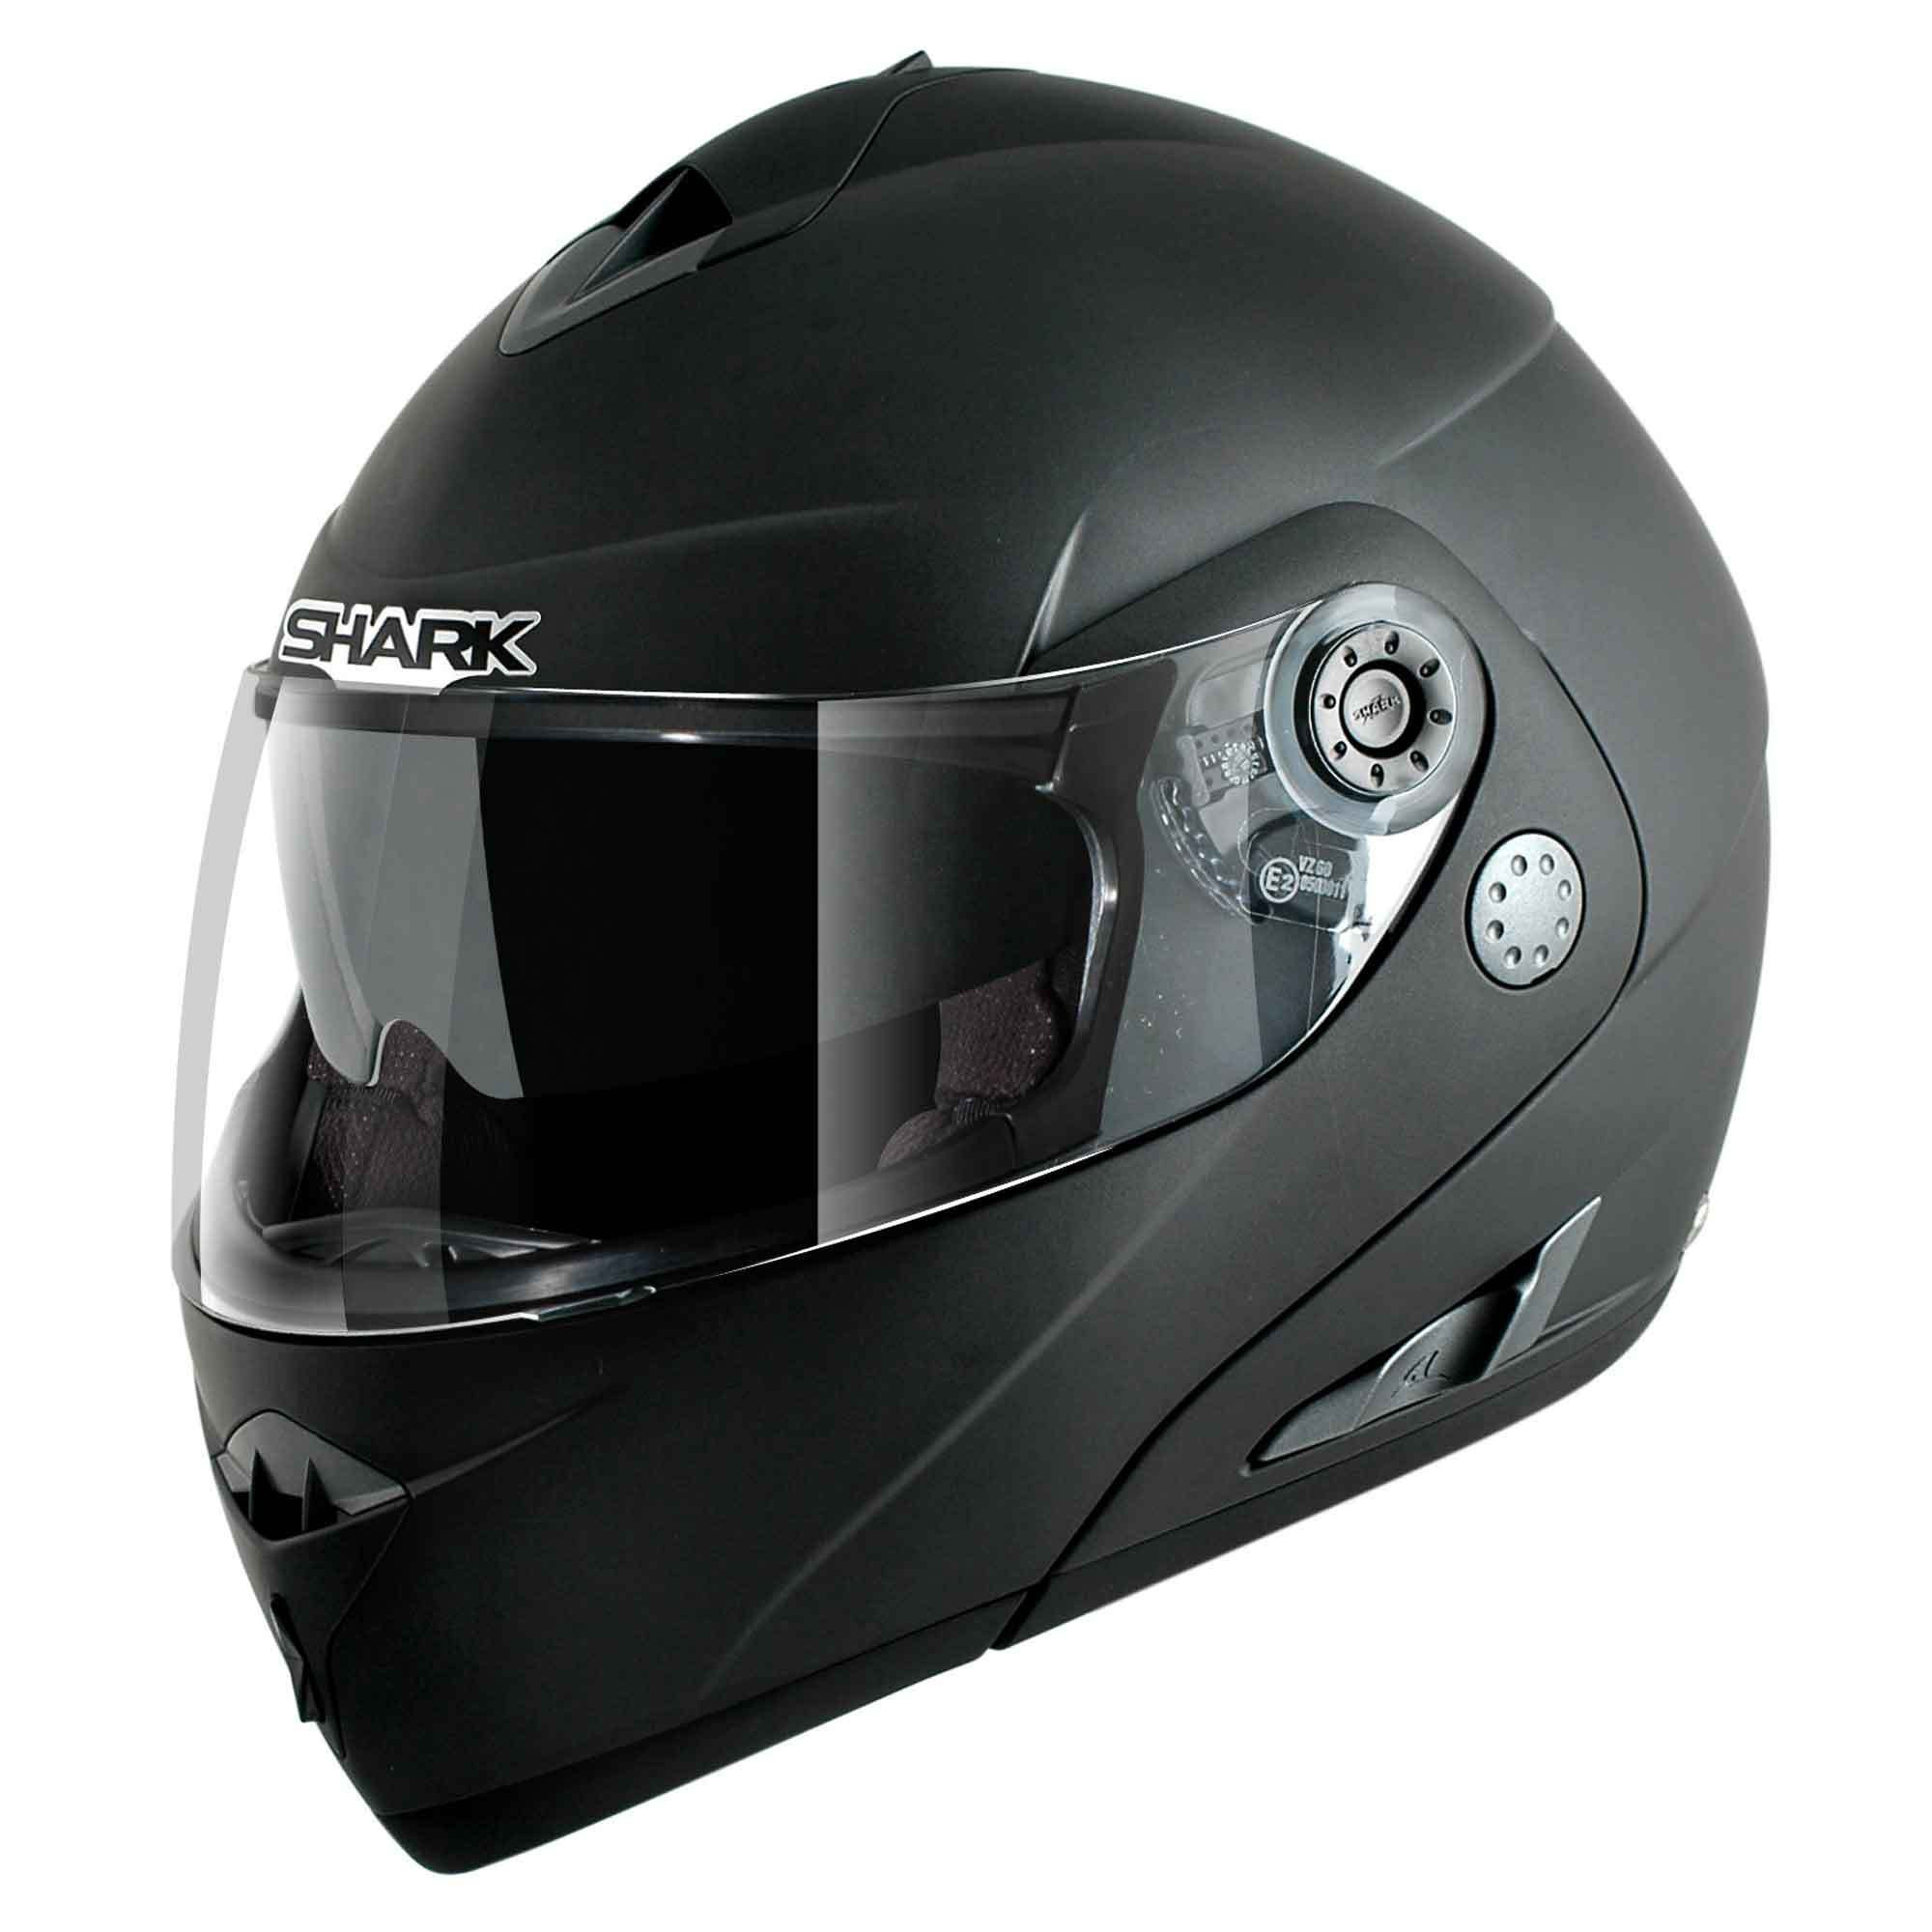 Casco Rebatible Shark Openline Prime Negro Mate